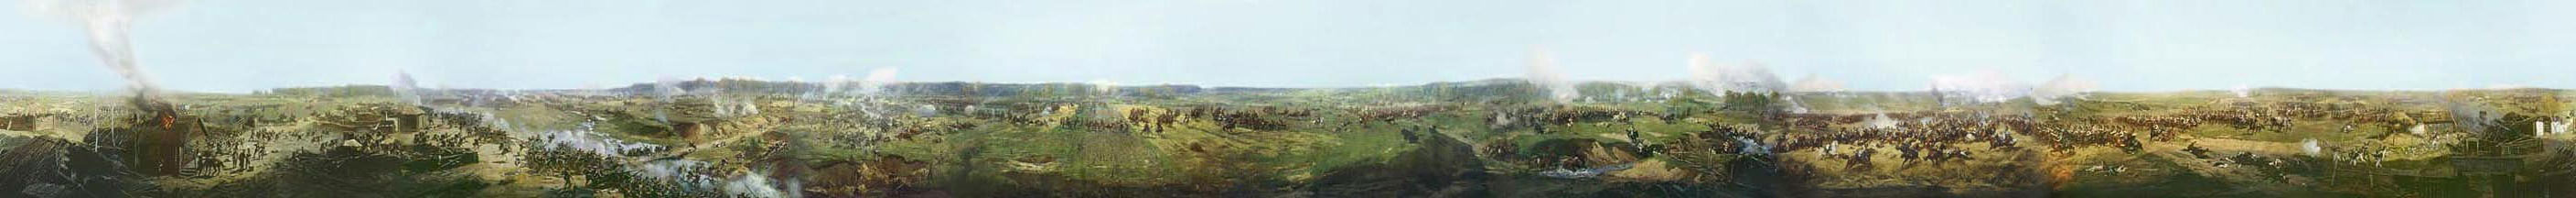 THE BATTLE OF BORODINO. SEPTEMBER 7, 1812